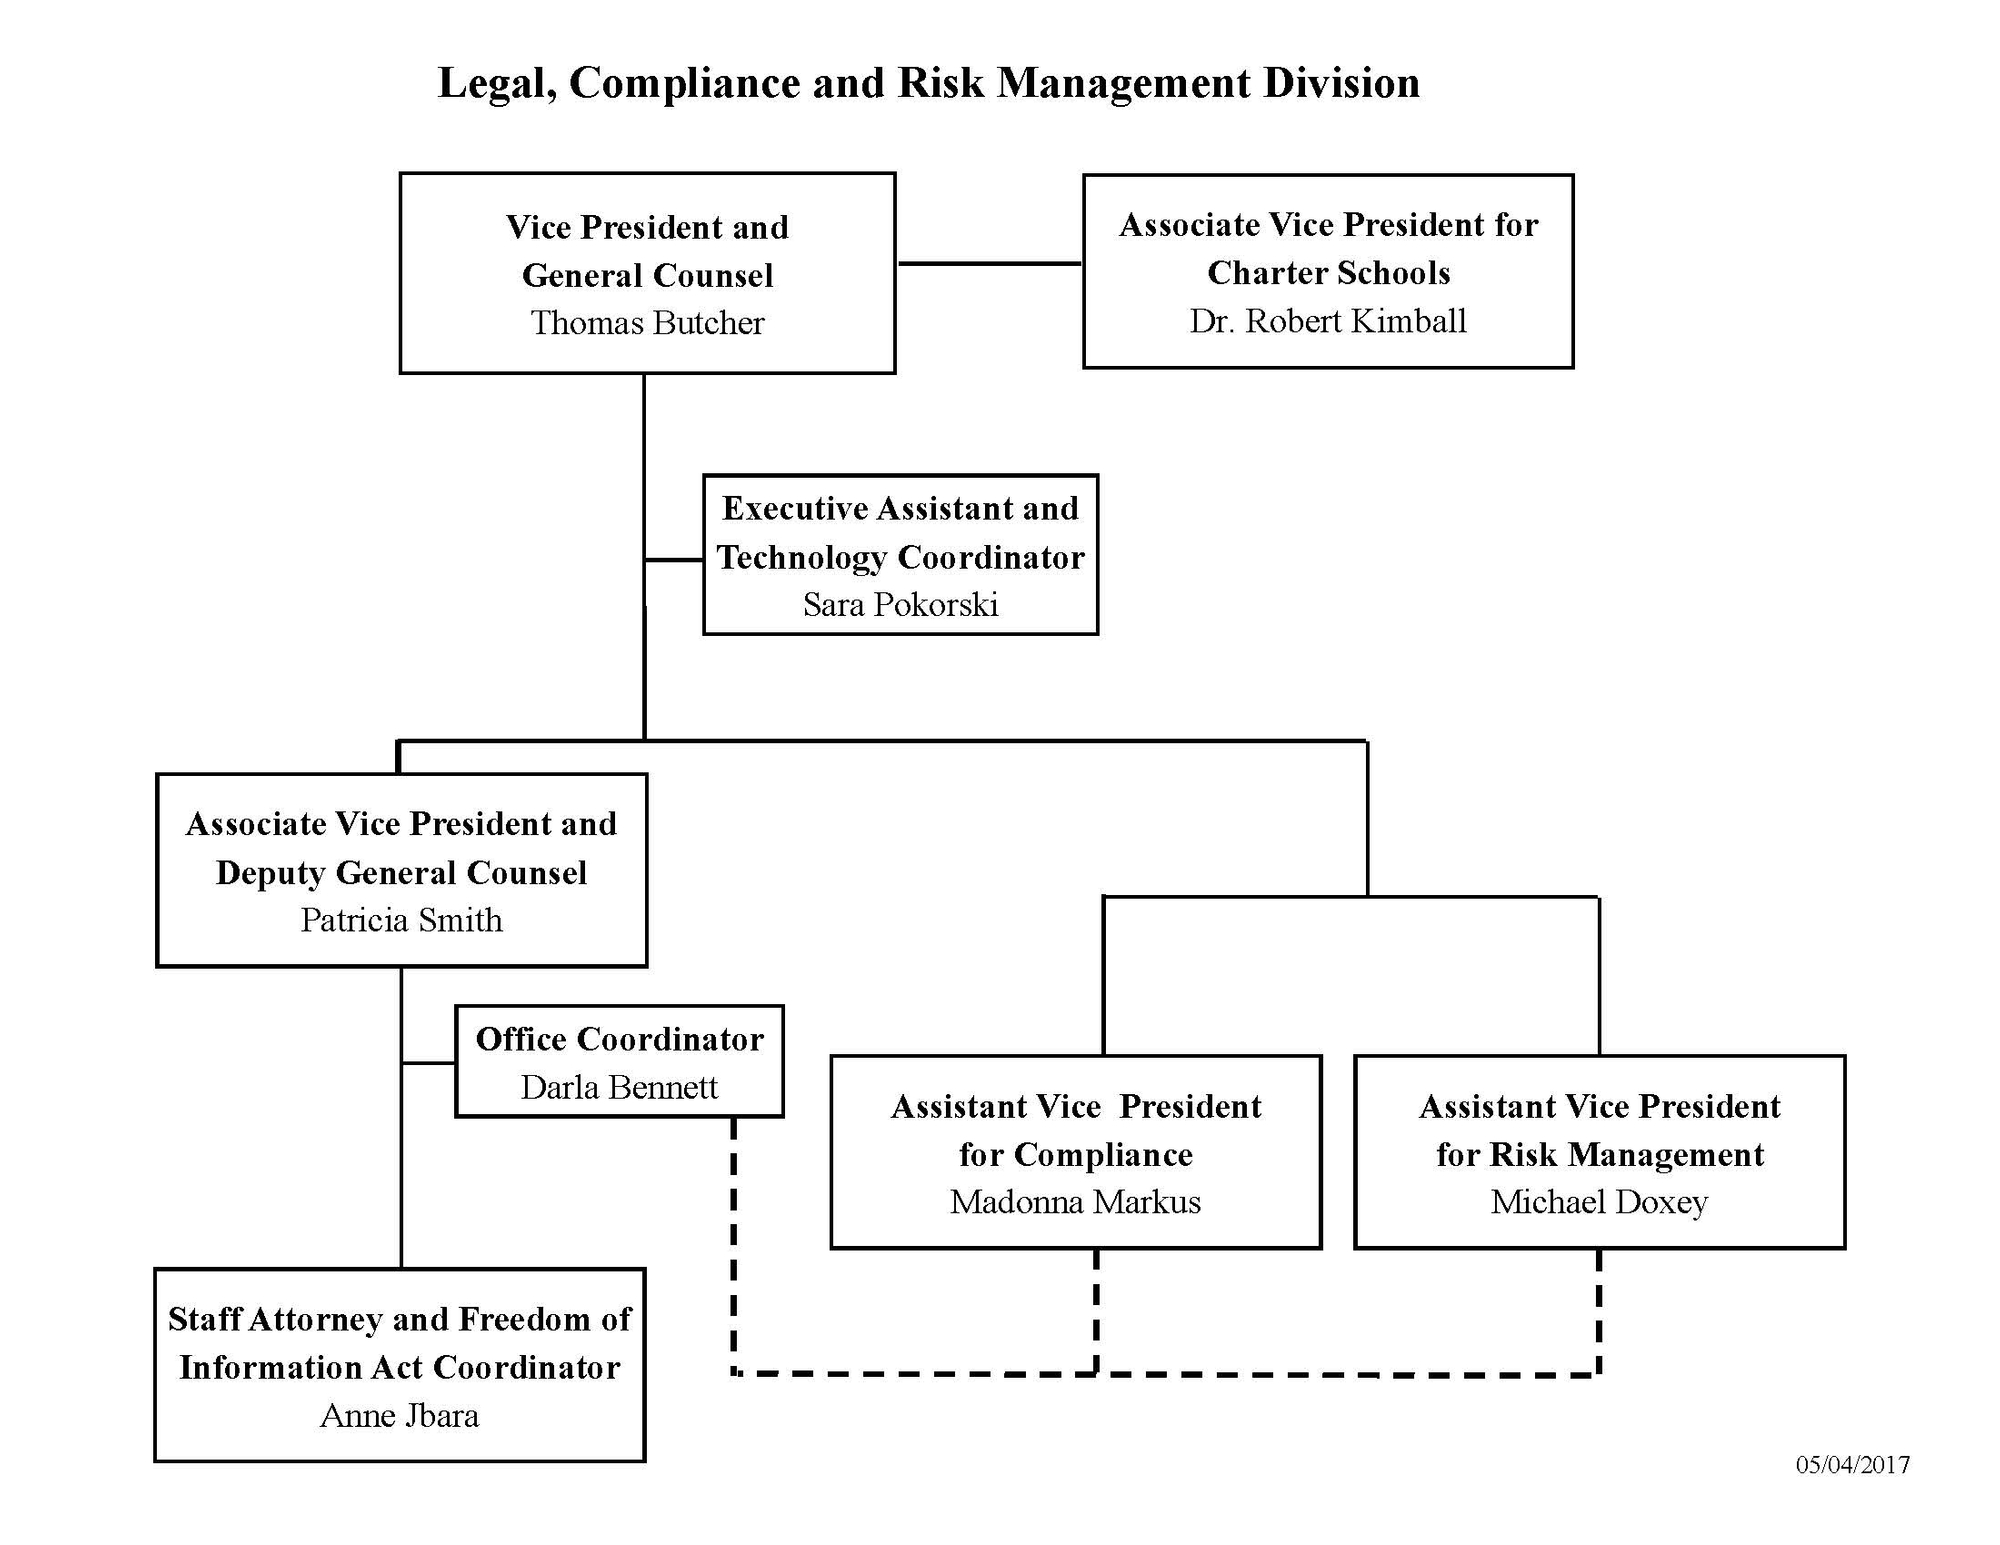 Legal, Compliance and Risk Management Organizational Chart